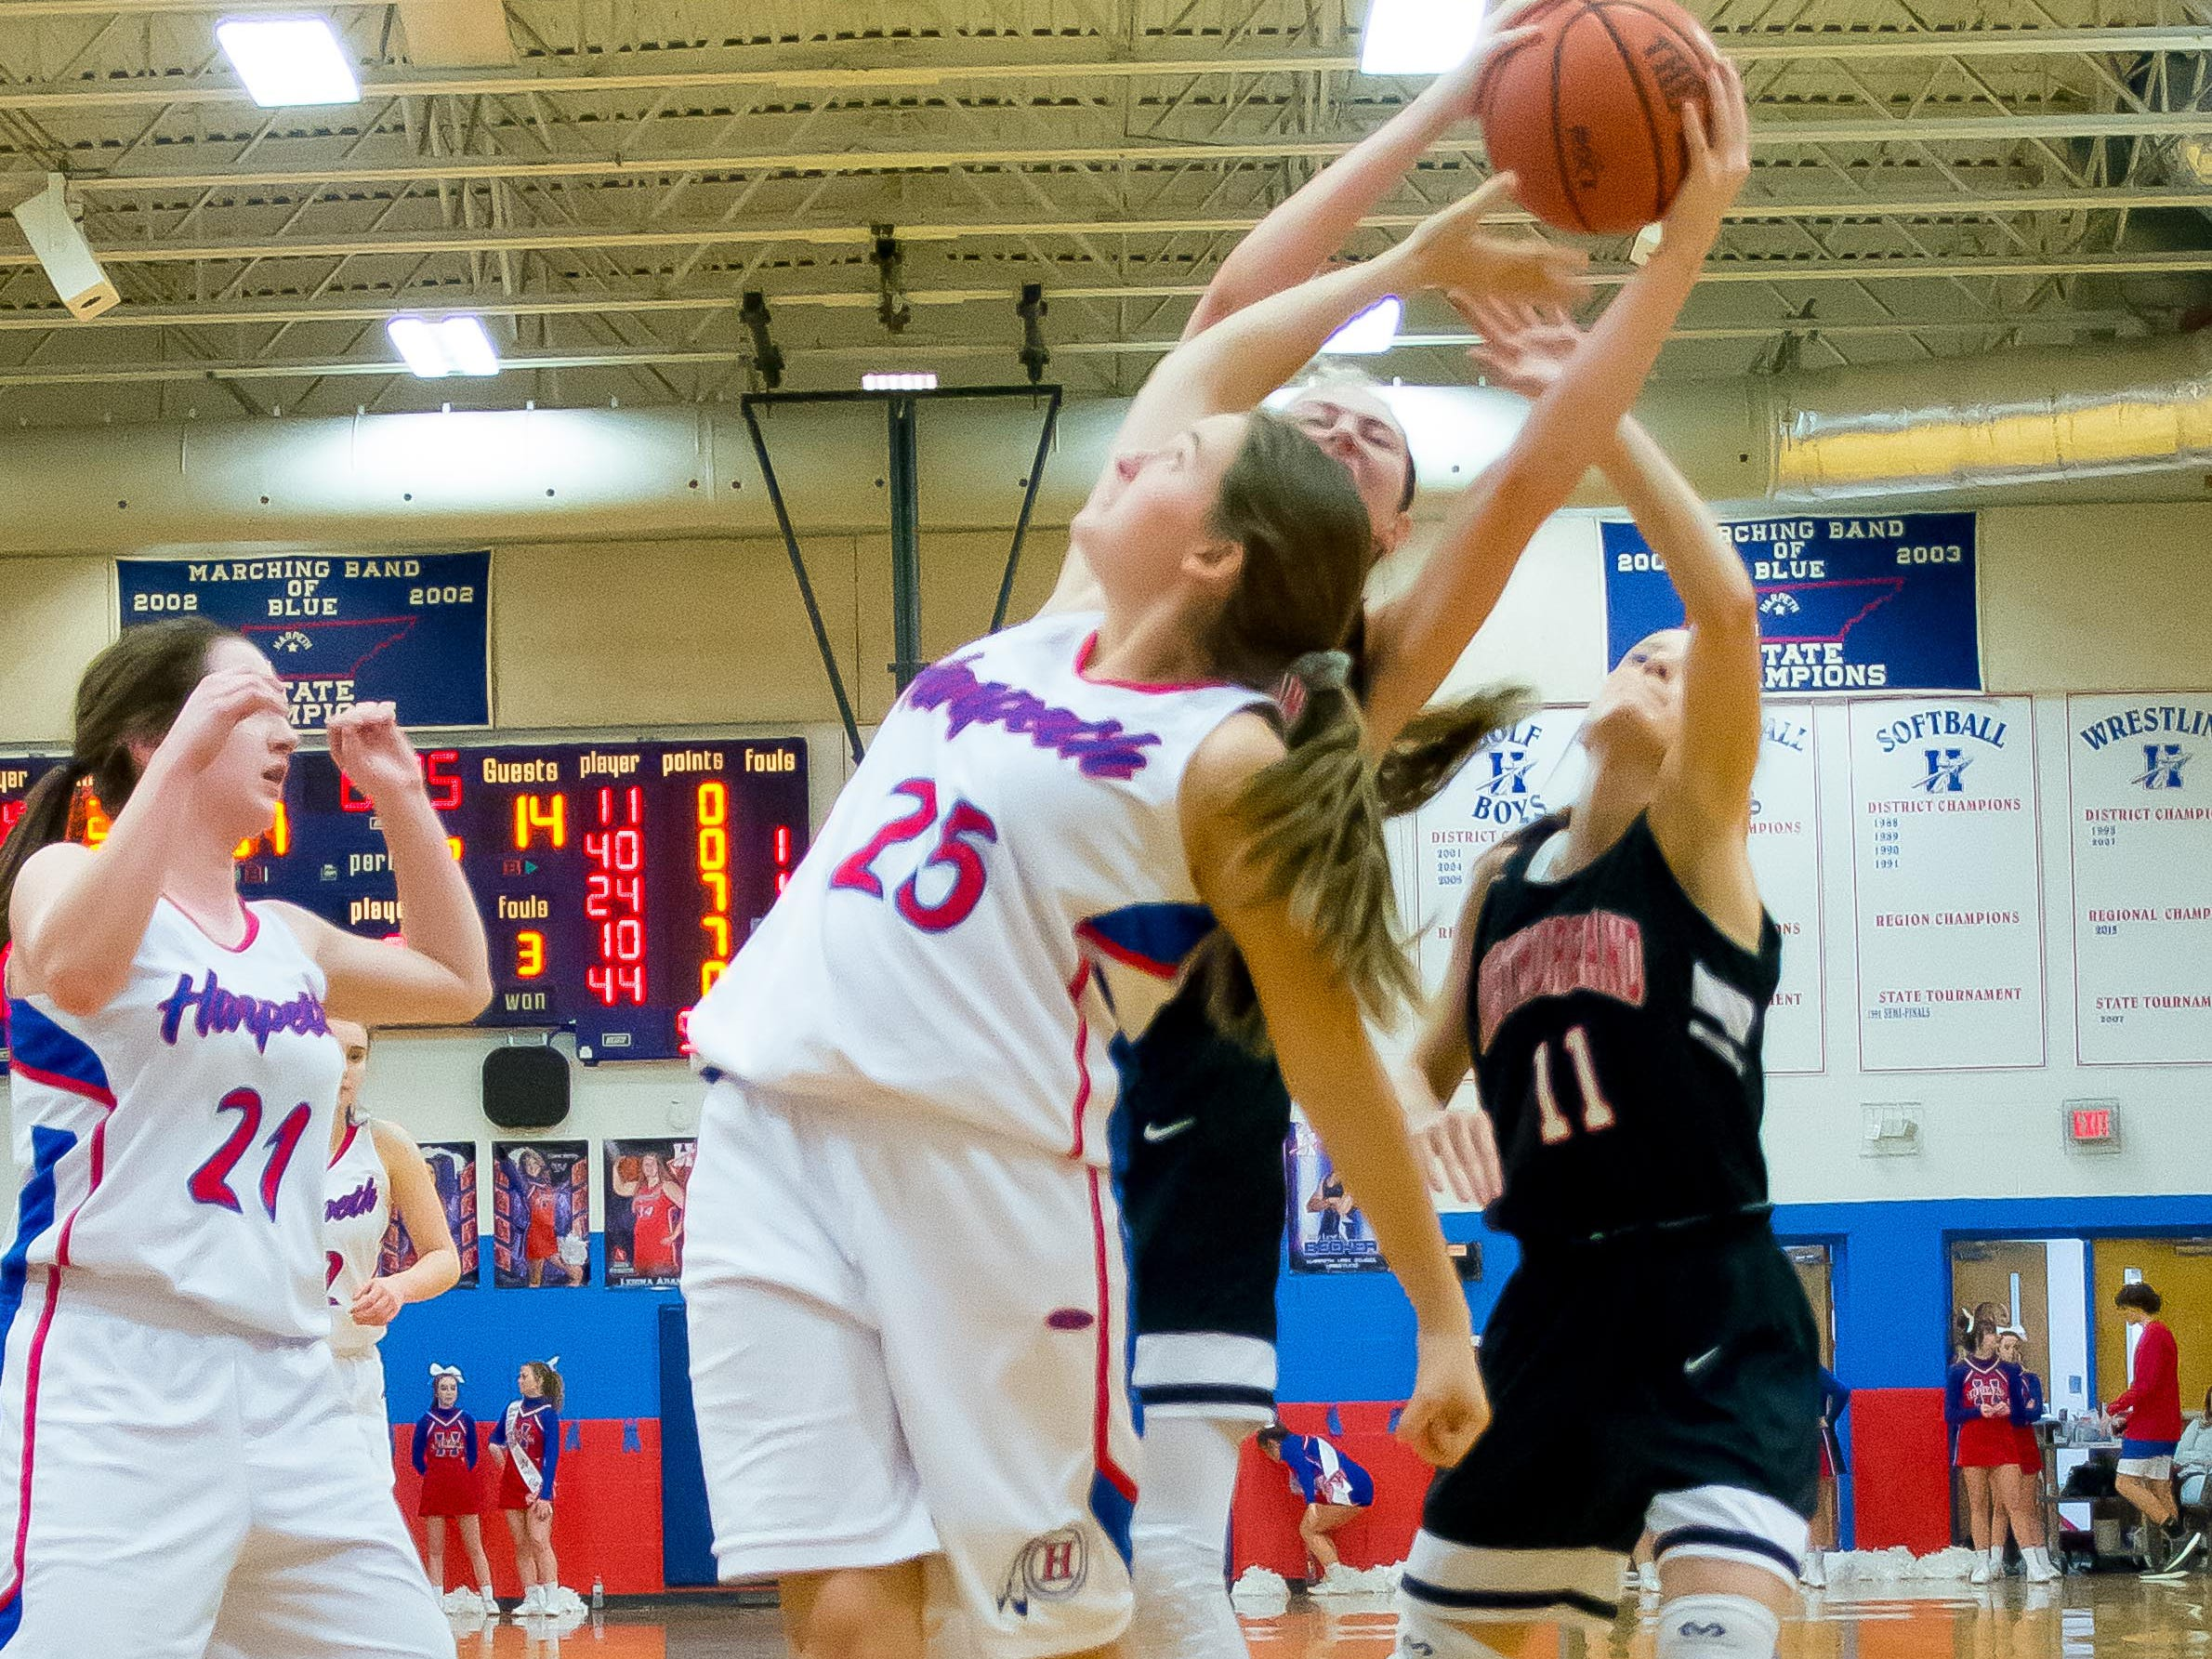 #25 Evie Bledsoe reaching for the rebound for Harpeth.